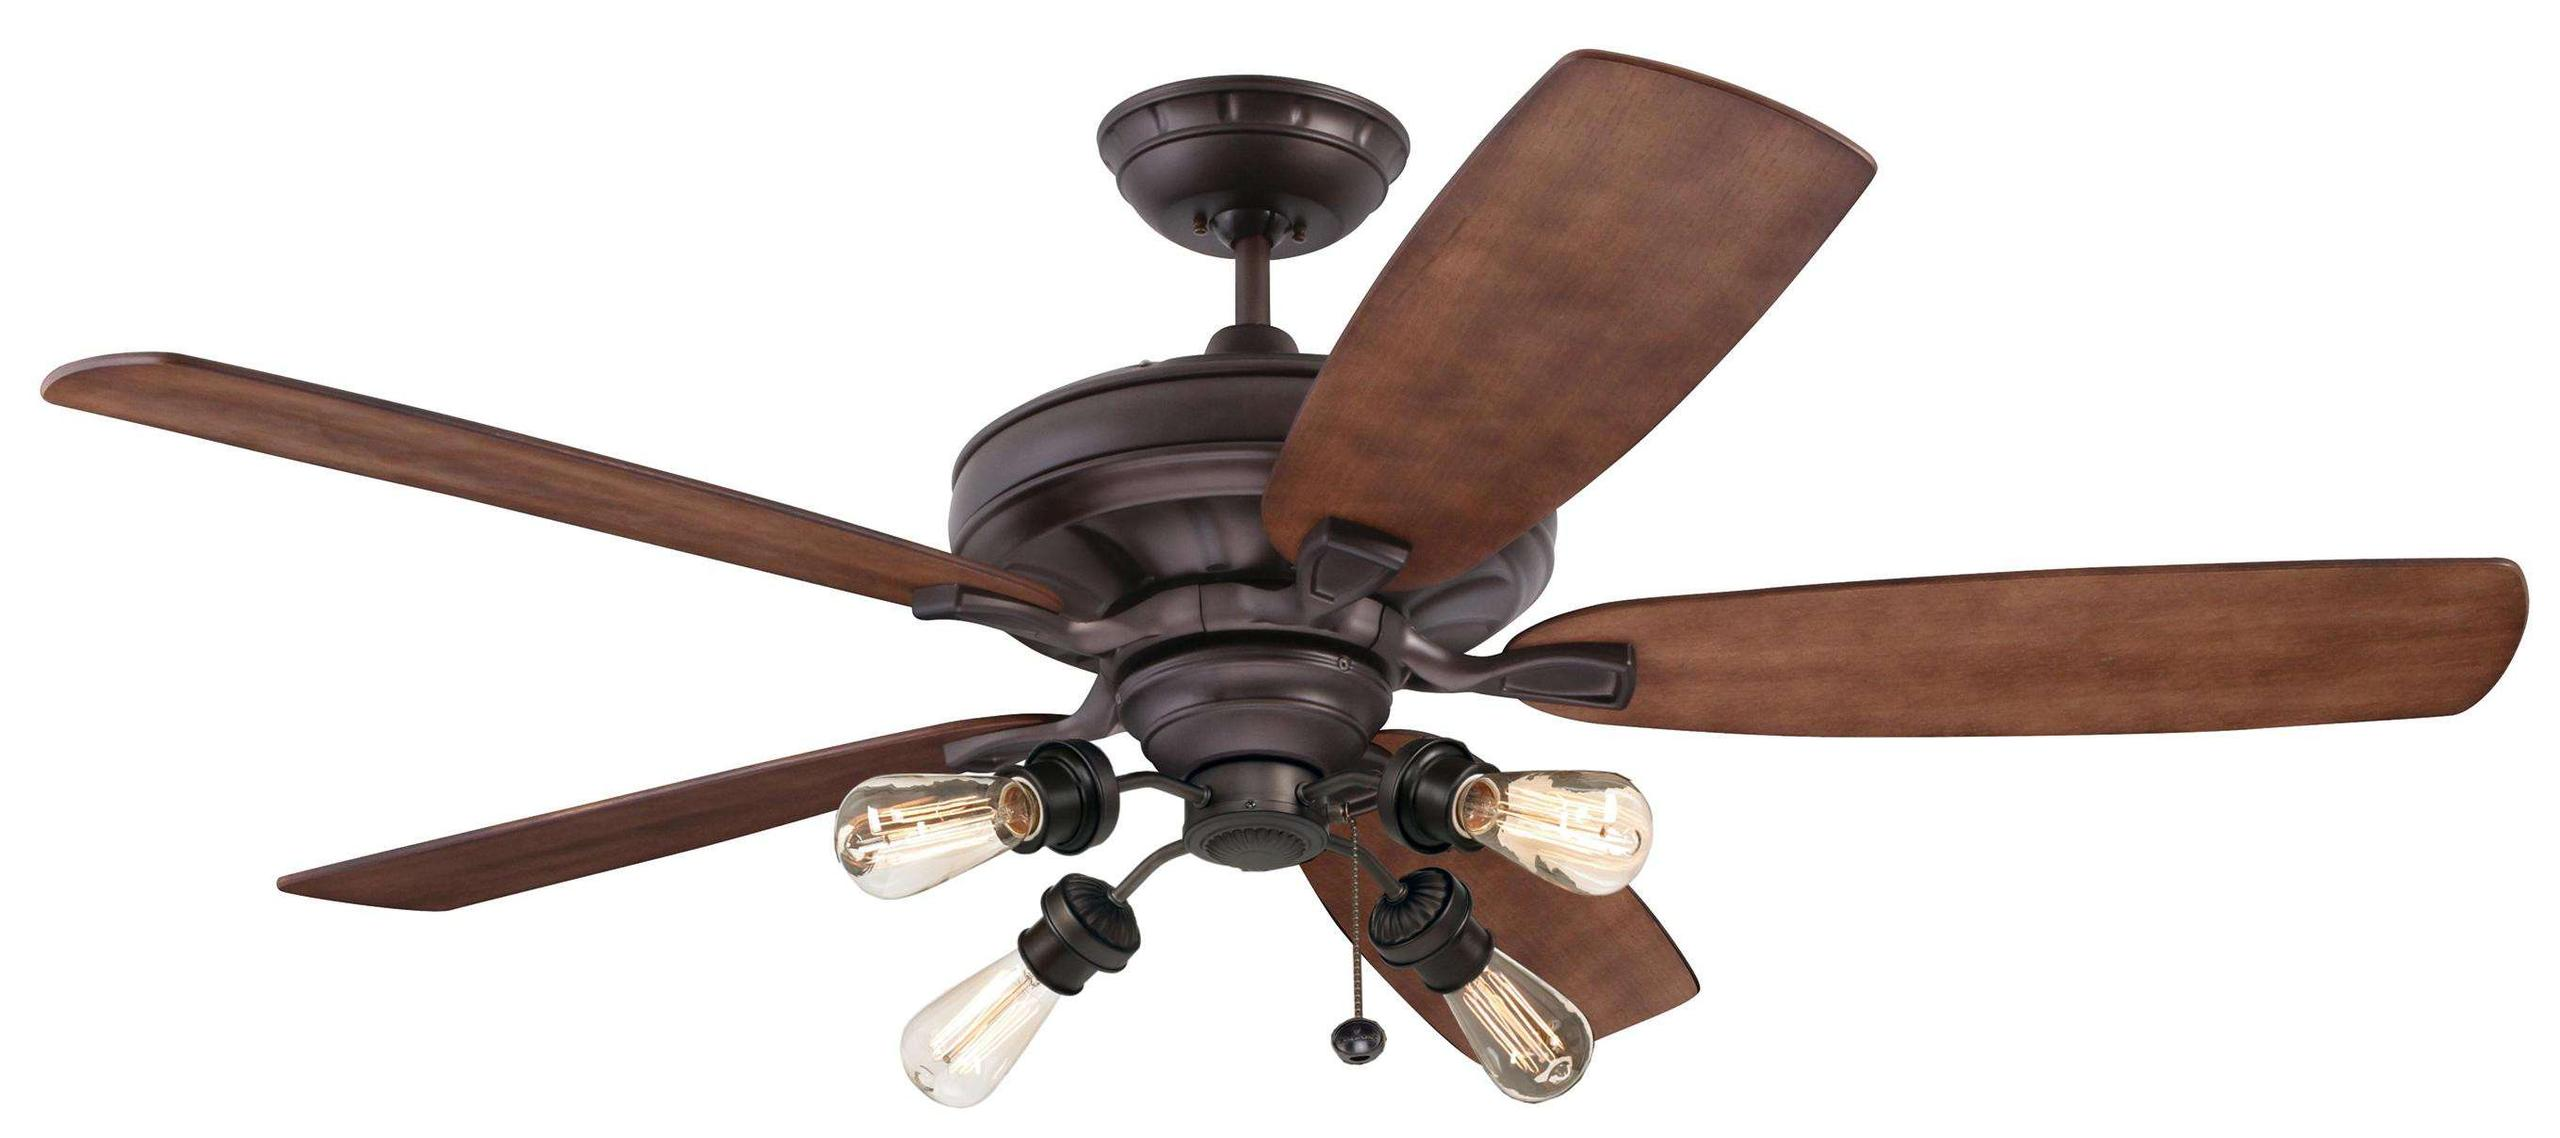 Emerson Carrera Grande Eco 60 (DC Motor) Ceiling Fan Model CF788ORB-B78WA-F440ORB-VB100ORB in Oil Rubbed Bronze